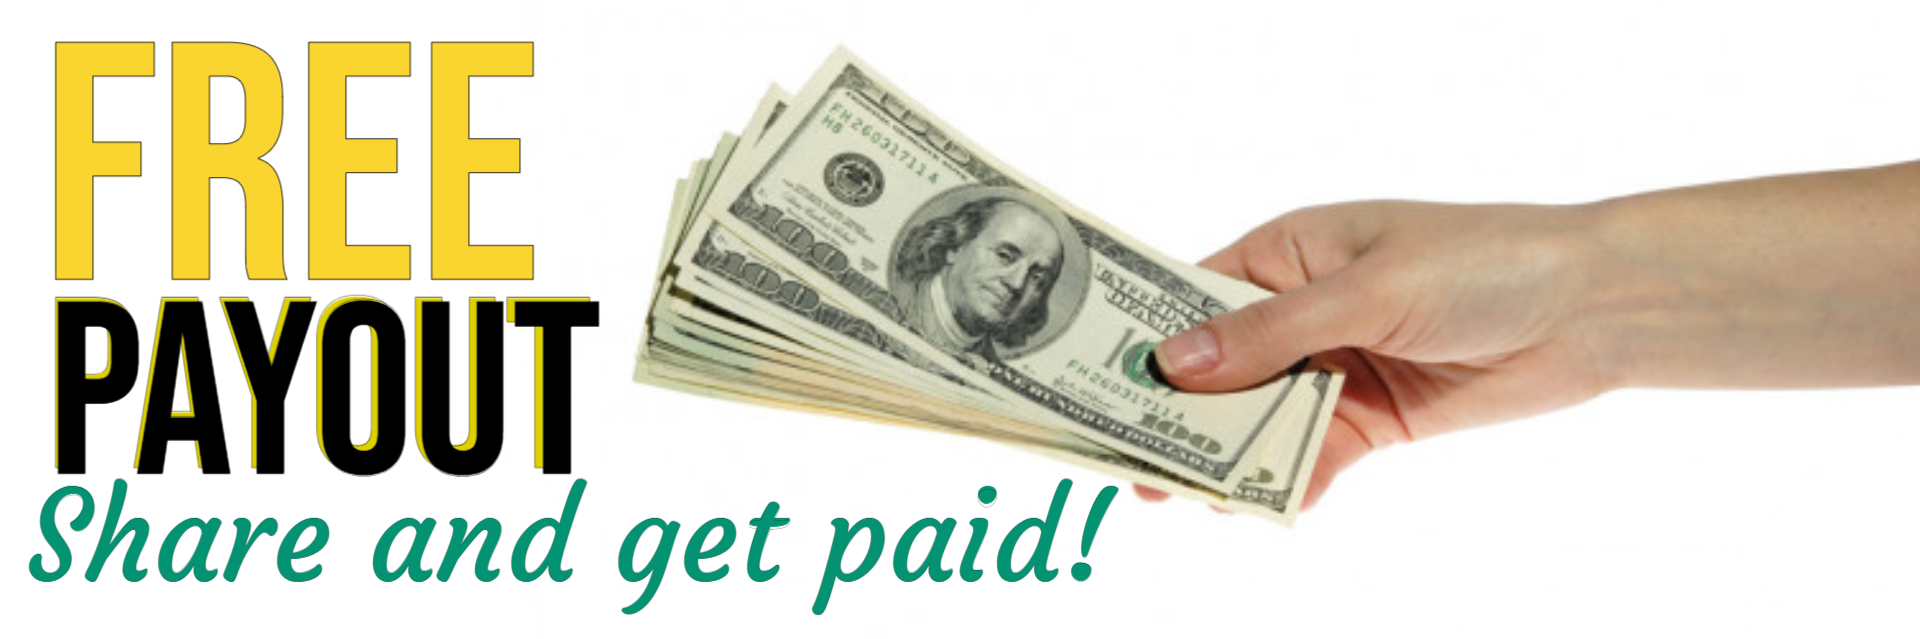 Share and get paid on paidbytheminute.com